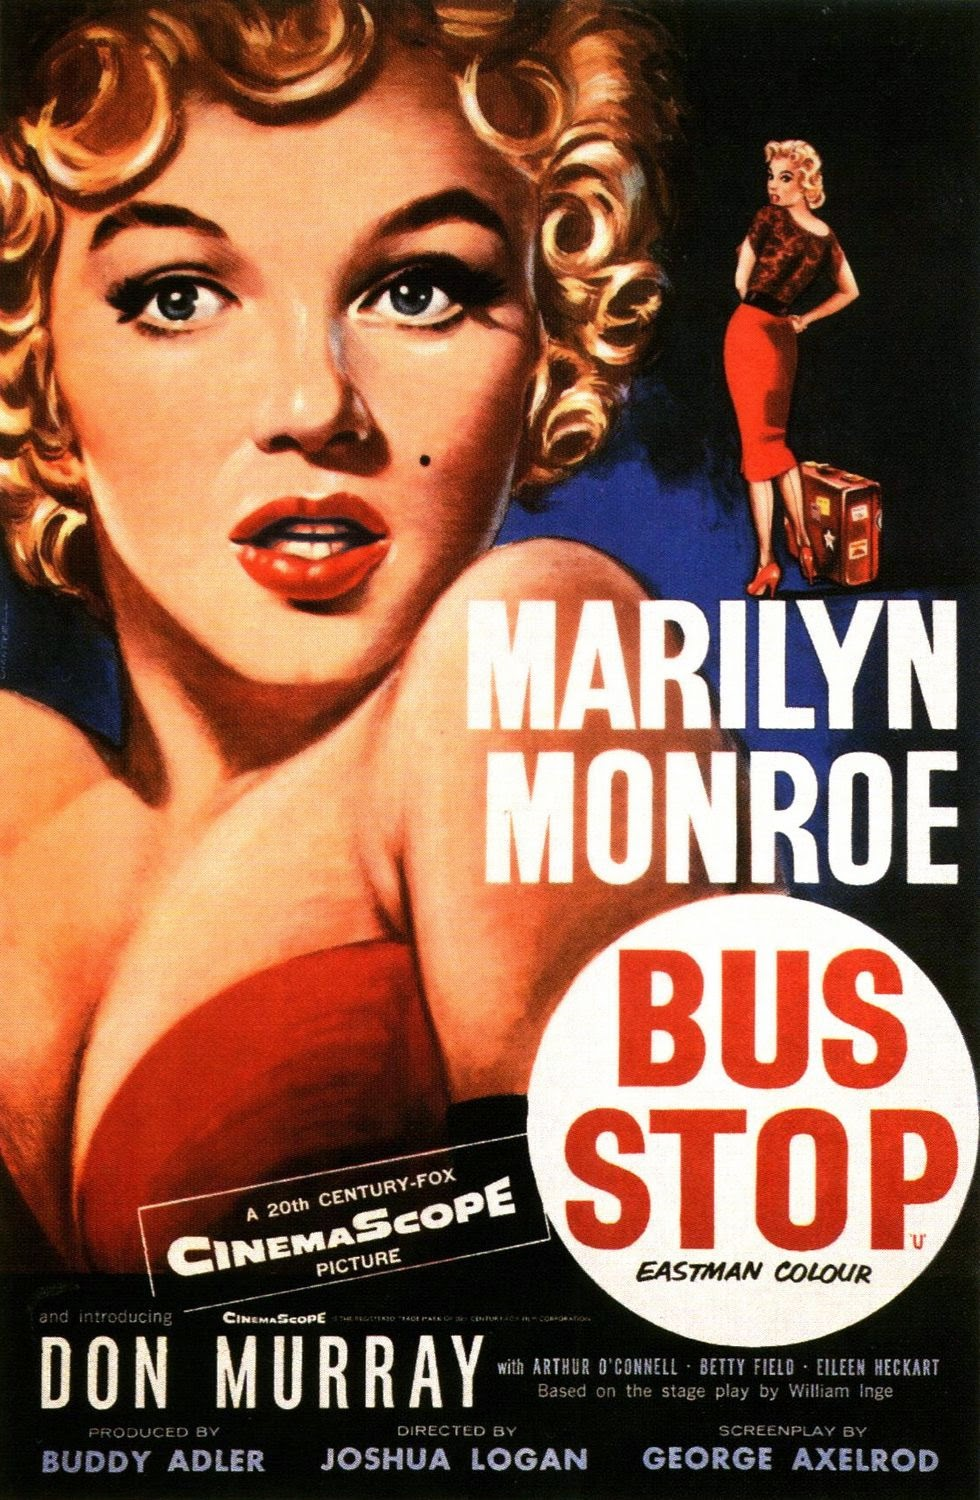 ART & ARTISTS: Film Posters 1950s Movie Posters 1950s - part 3